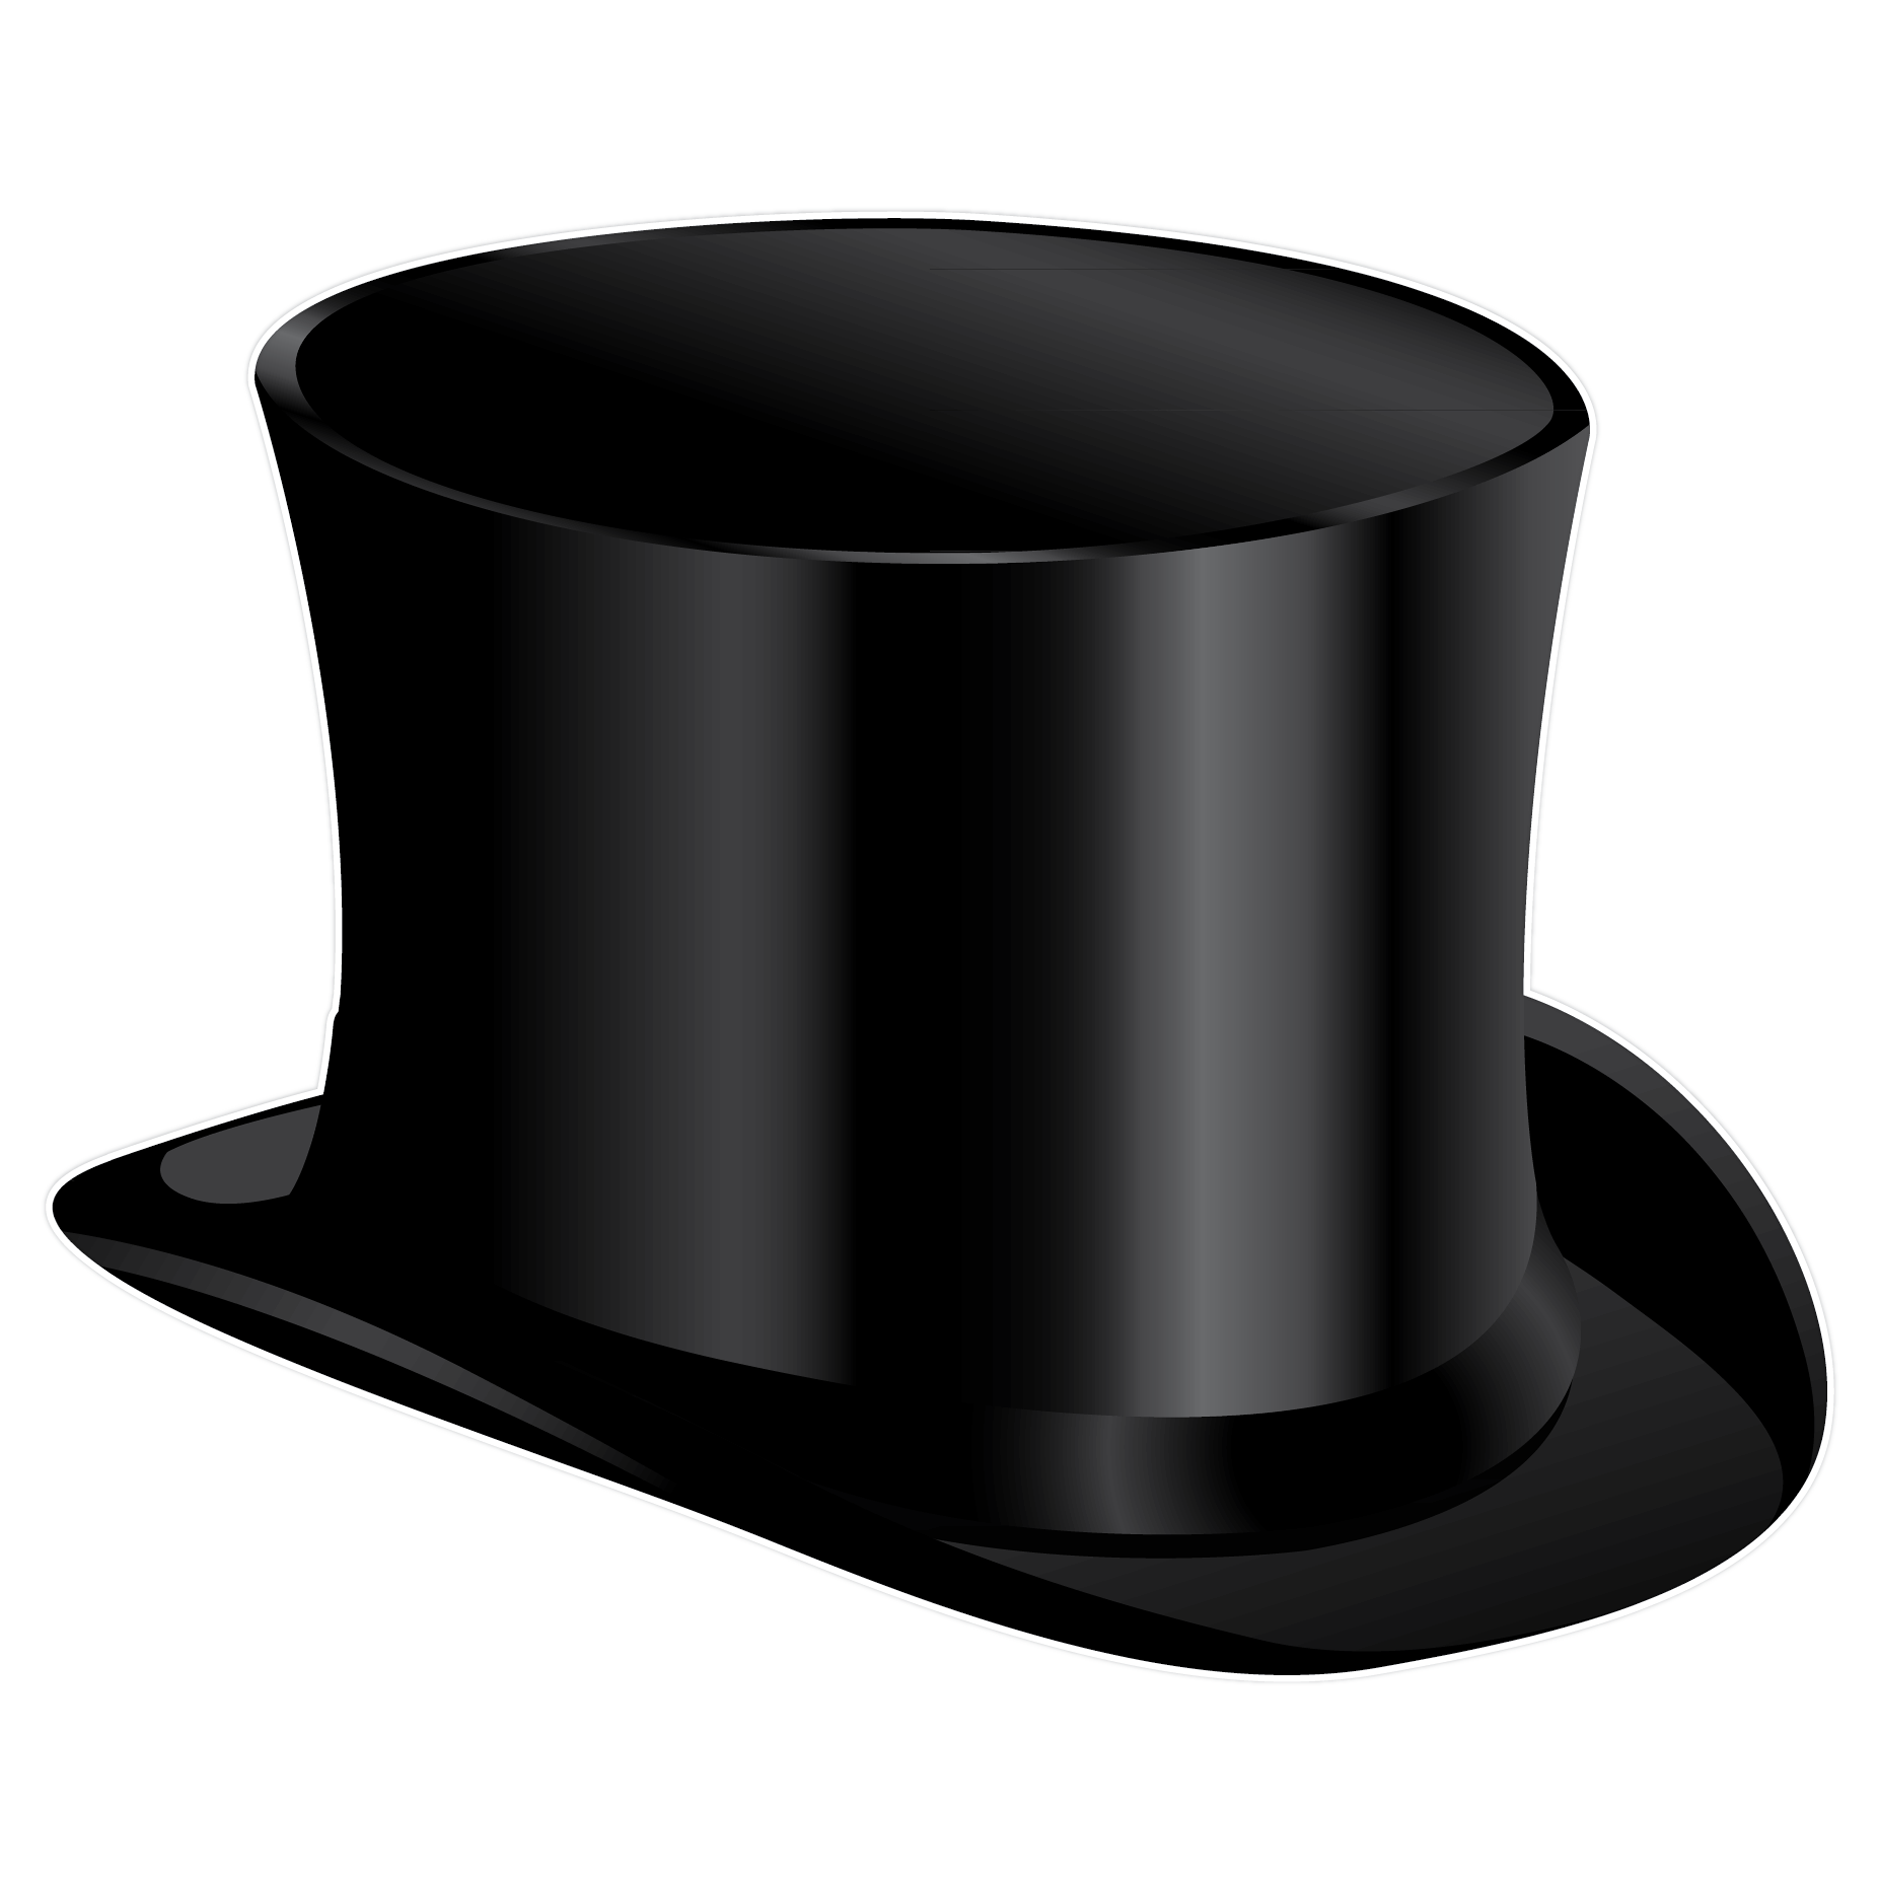 Top Hat Clipart.